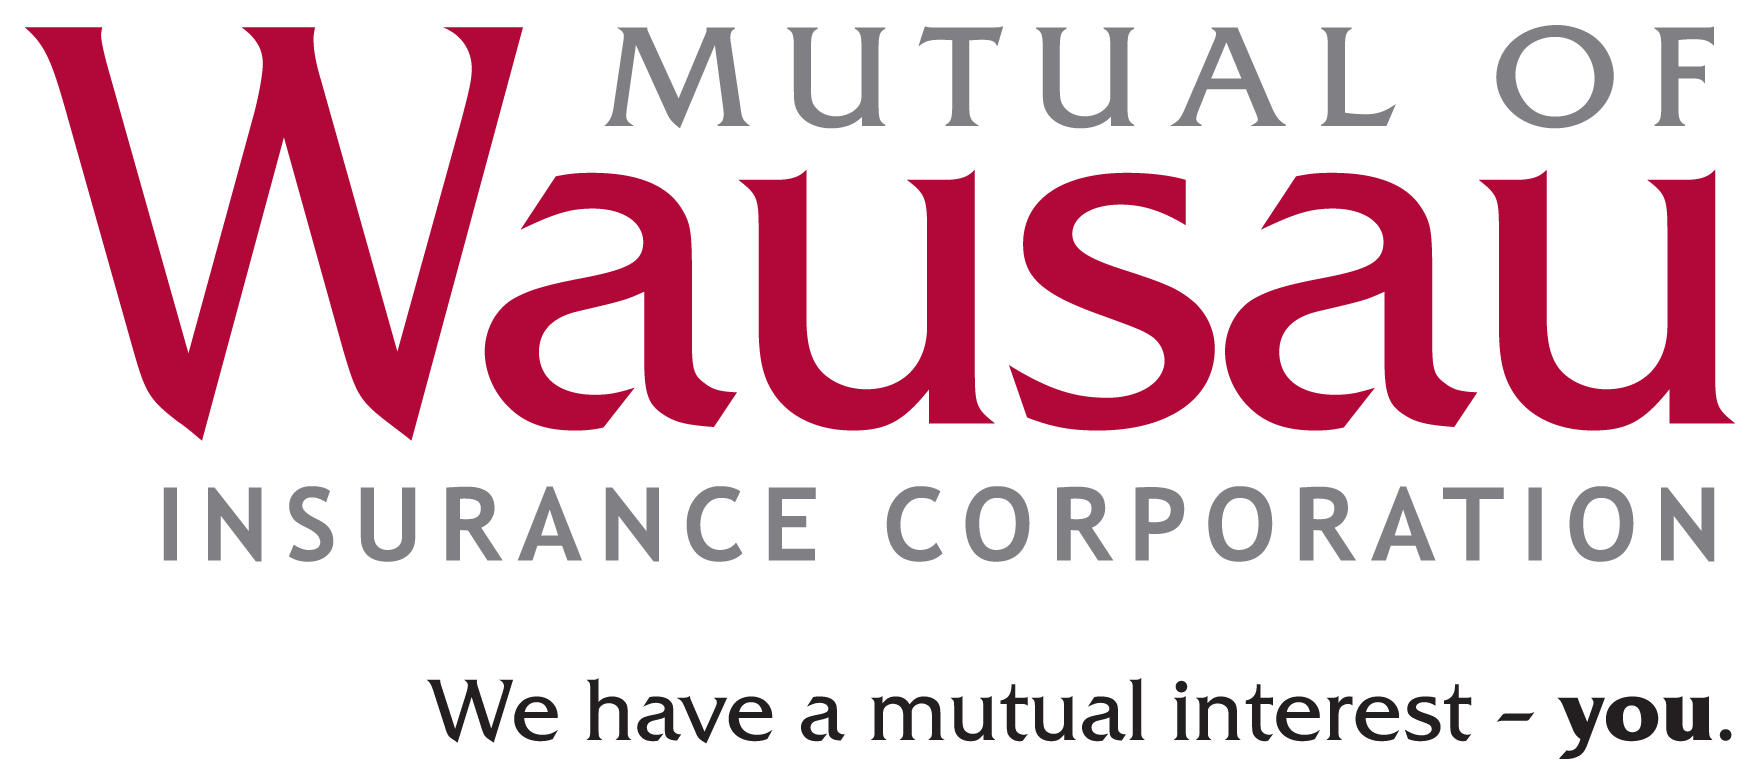 Mutual_Of_Wausau_Logo.png